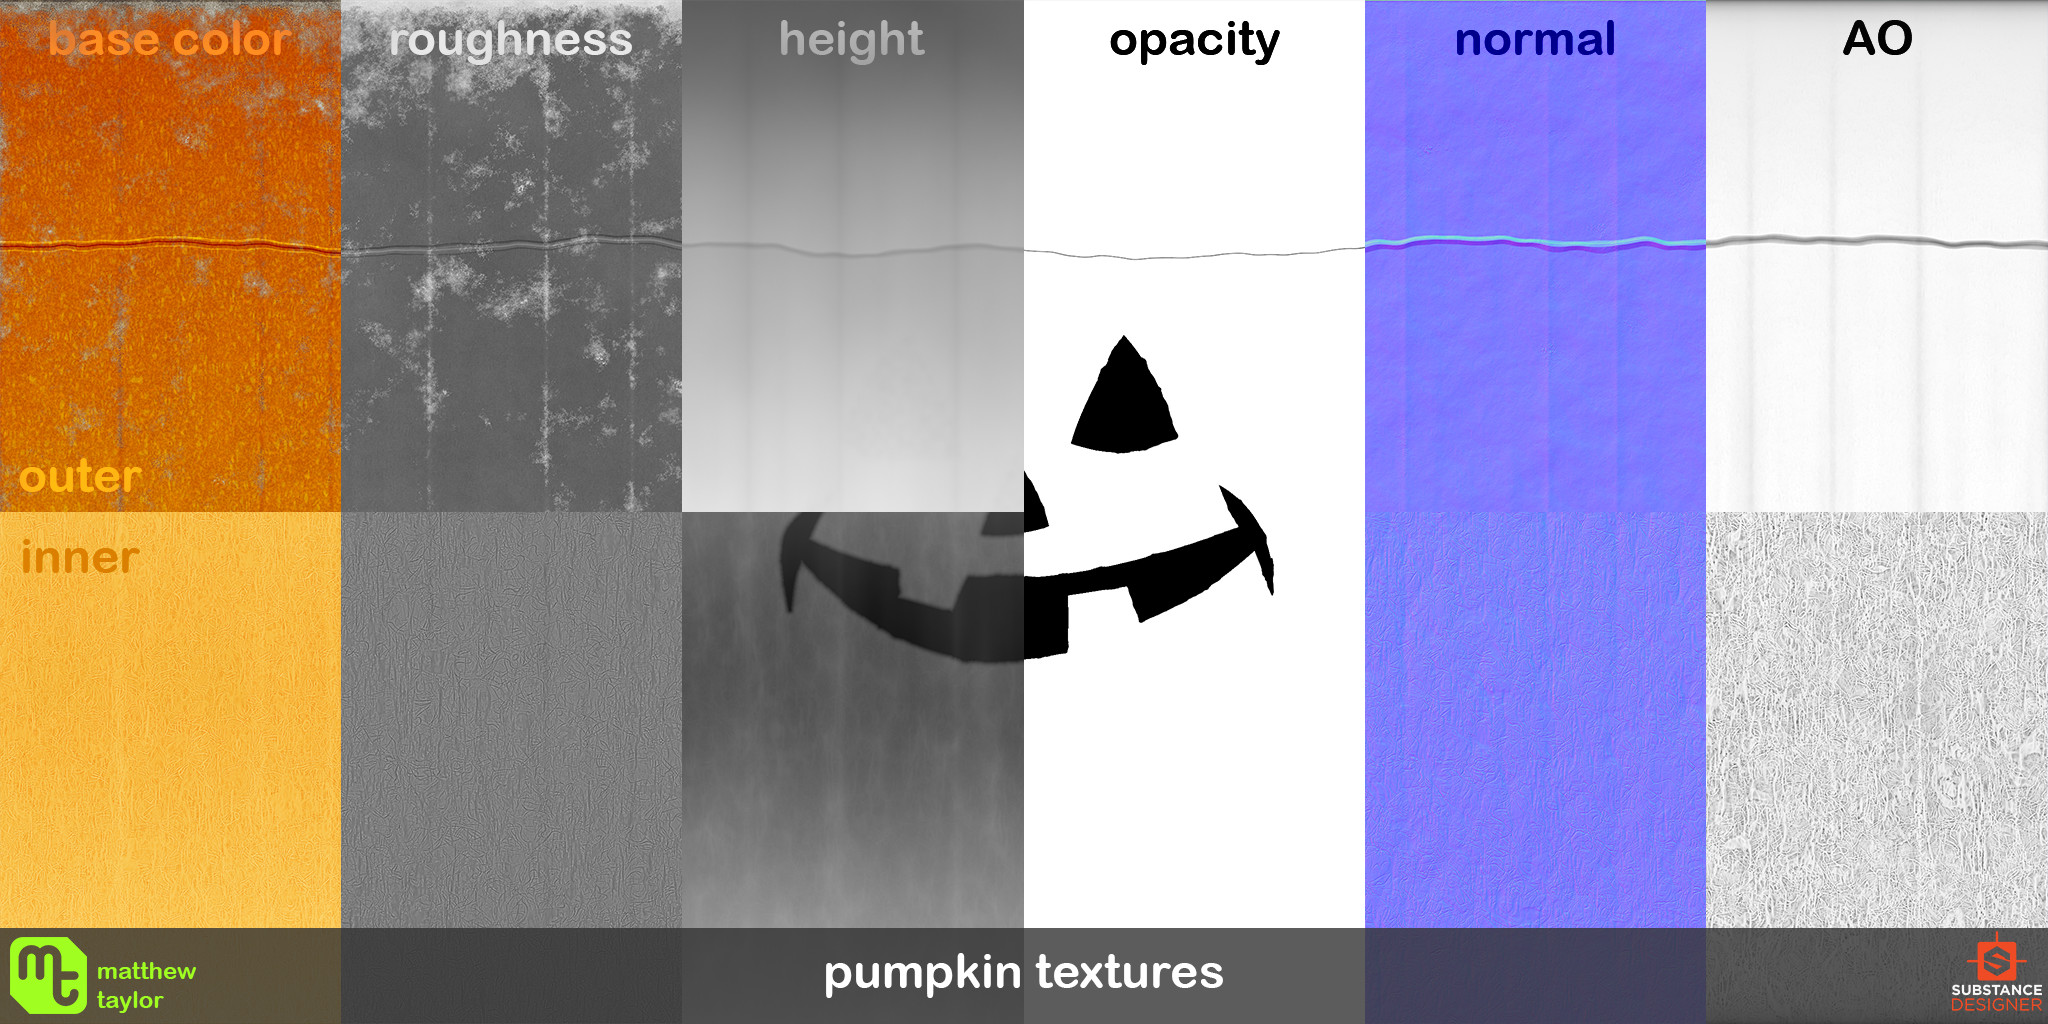 Texture breakdown for the pumpkin material.